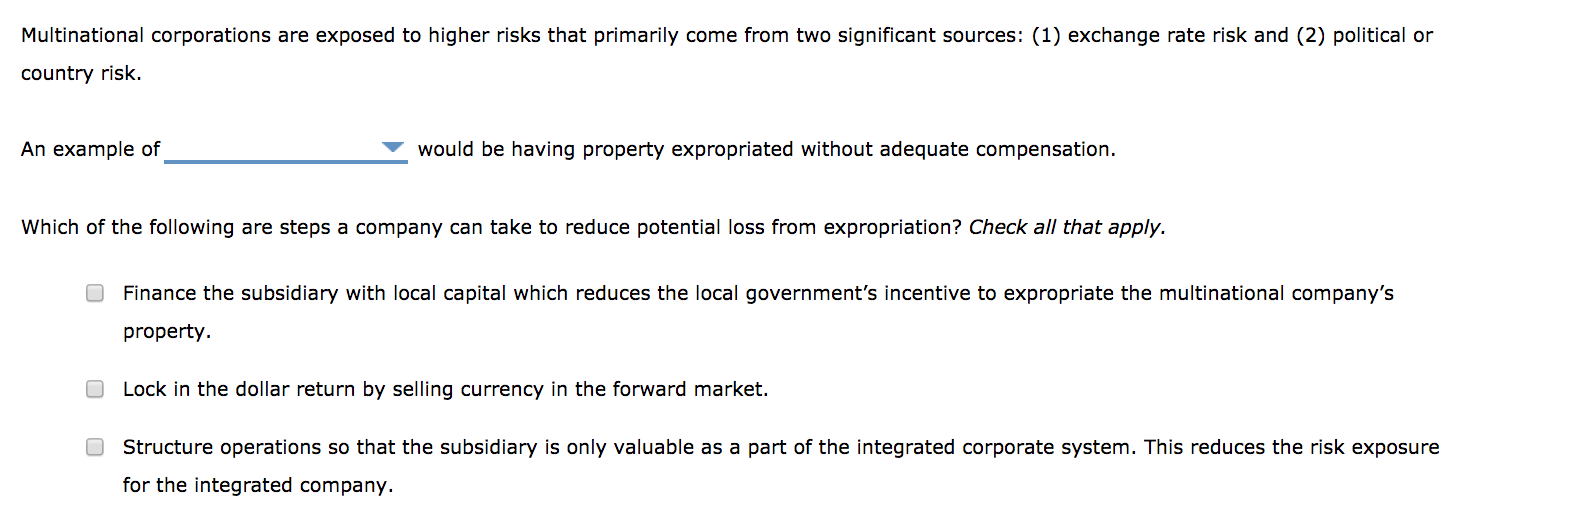 Multinational corporations are exposed to higher risks that primarily come from two significant sources: (1) exchange rate risk and (2) political or country risk. An example of would be having property expropriated without adequate compensation. Which of the following are steps a company can take to reduce potential loss from expropriation? Check all that apply. Finance the subsidiary with local capital which reduces the local government's incentive to expropriate the multinational company's property. O Lock in the dollar return by selling currency in the forward market. Structure operations so that the subsidiary is only valuable as a part of the integrated corporate system. This reduces the risk exposure for the integrated company.